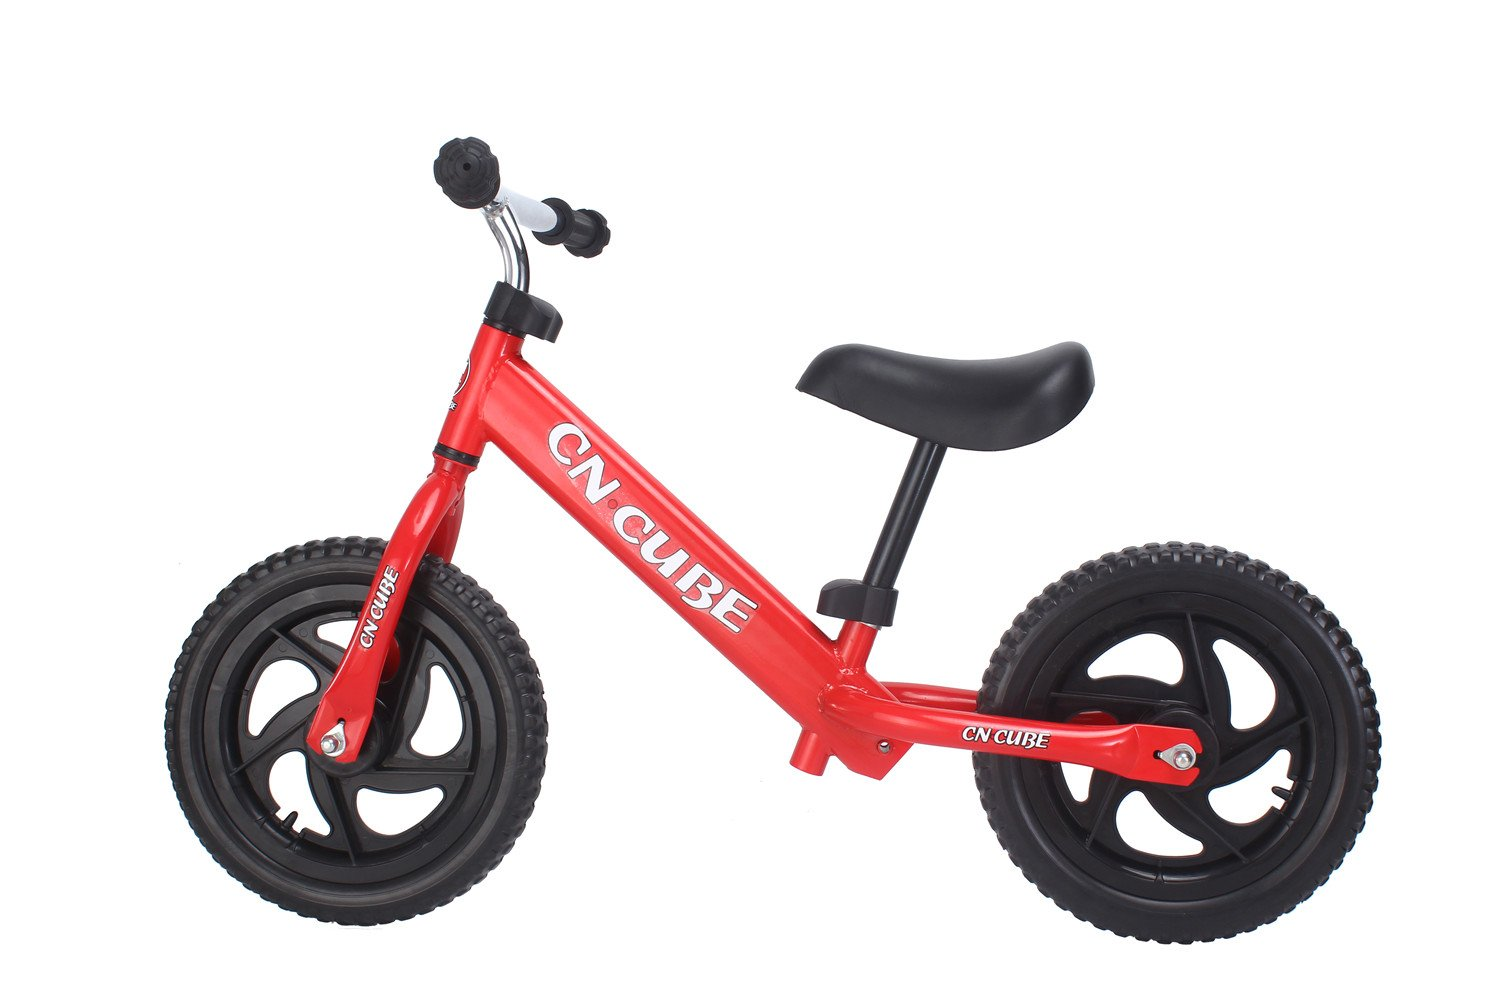 YBL Children's baby two rounds movement Balance Bike for No pedal bicycle Suitable for 2-6 years old Boys girls Carbon Steel Frame Adjustable Handlebar and Seat